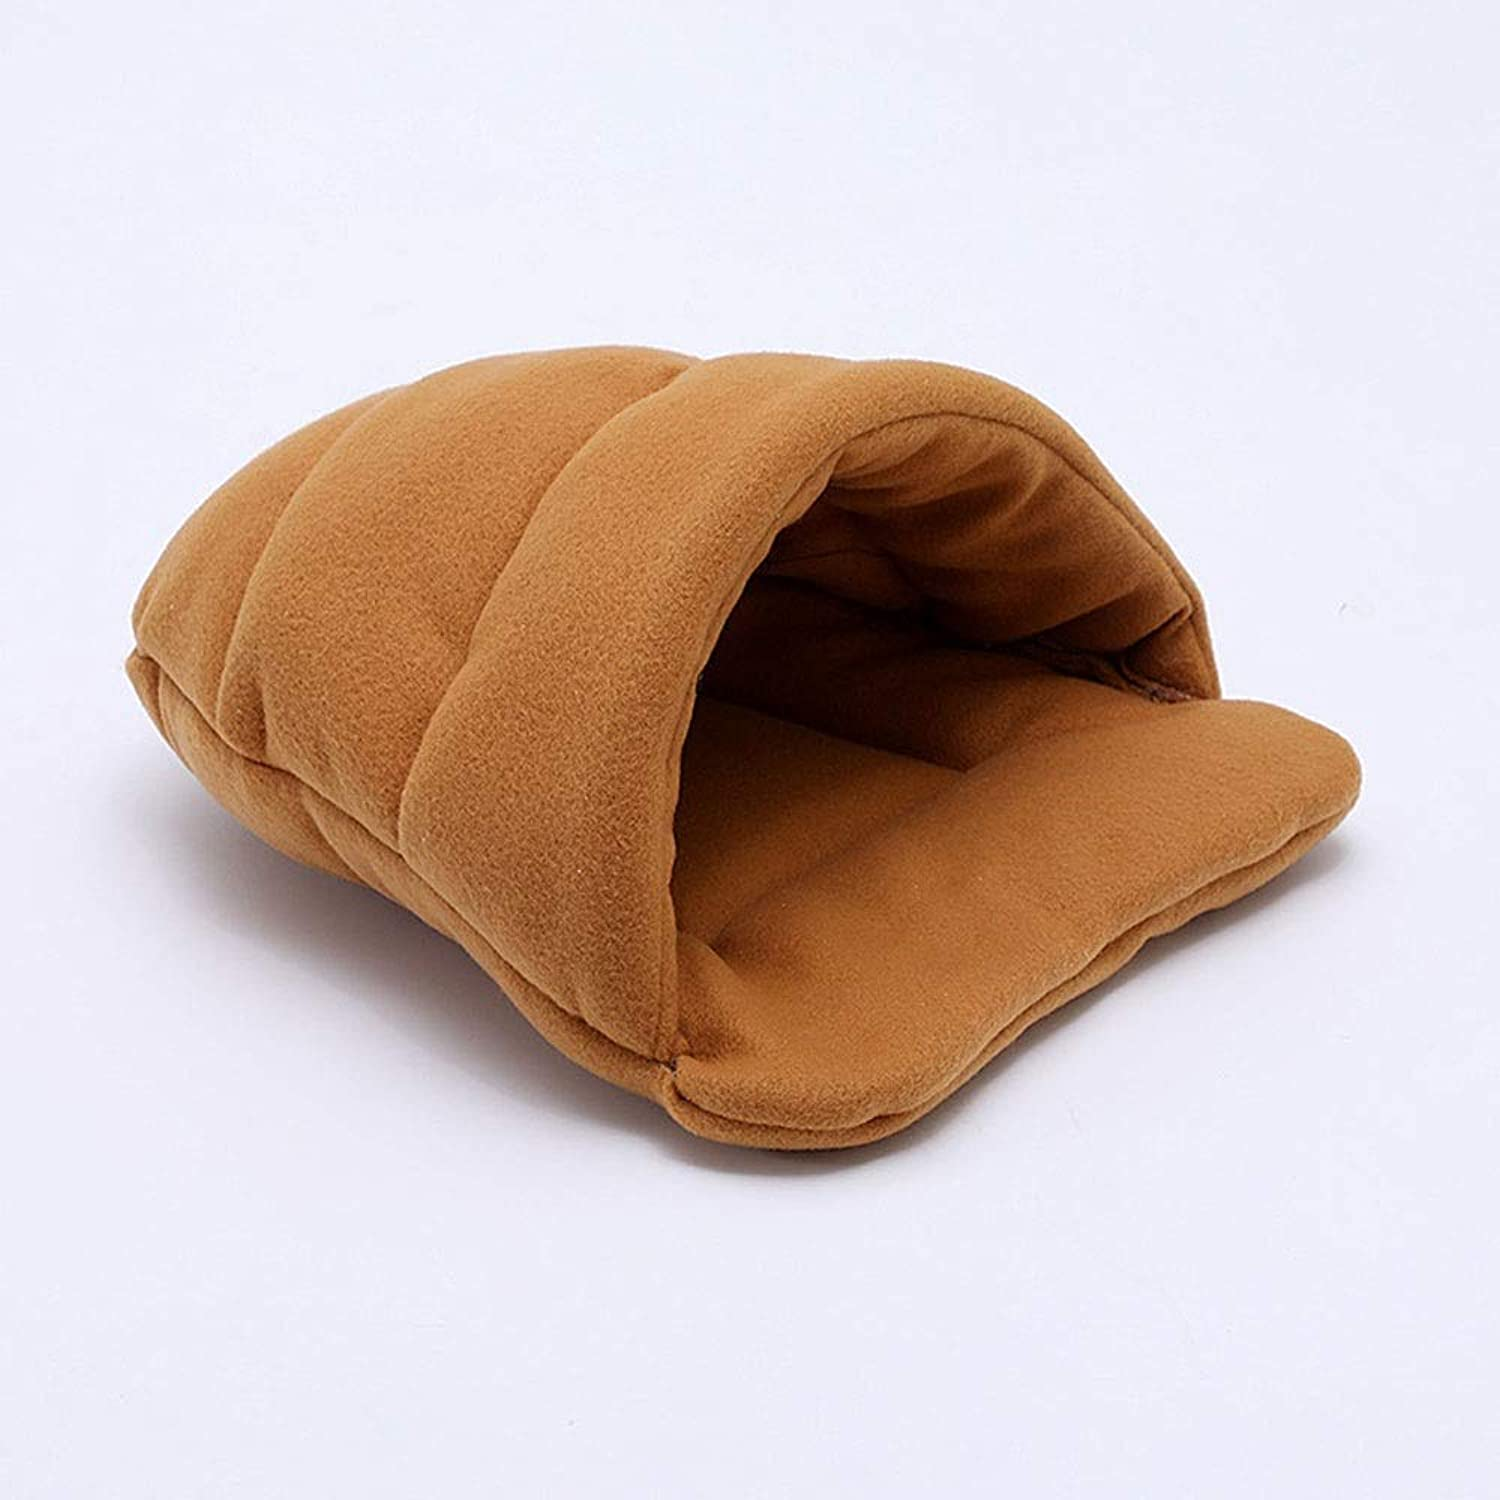 Oxltz Pet bed Pet Bed Soft And Comfortable Slippers Semiclosed Duvet Style Warmth Multicolor Small Pet Supplies pet fusion large bed (color   Brown, Size   M)